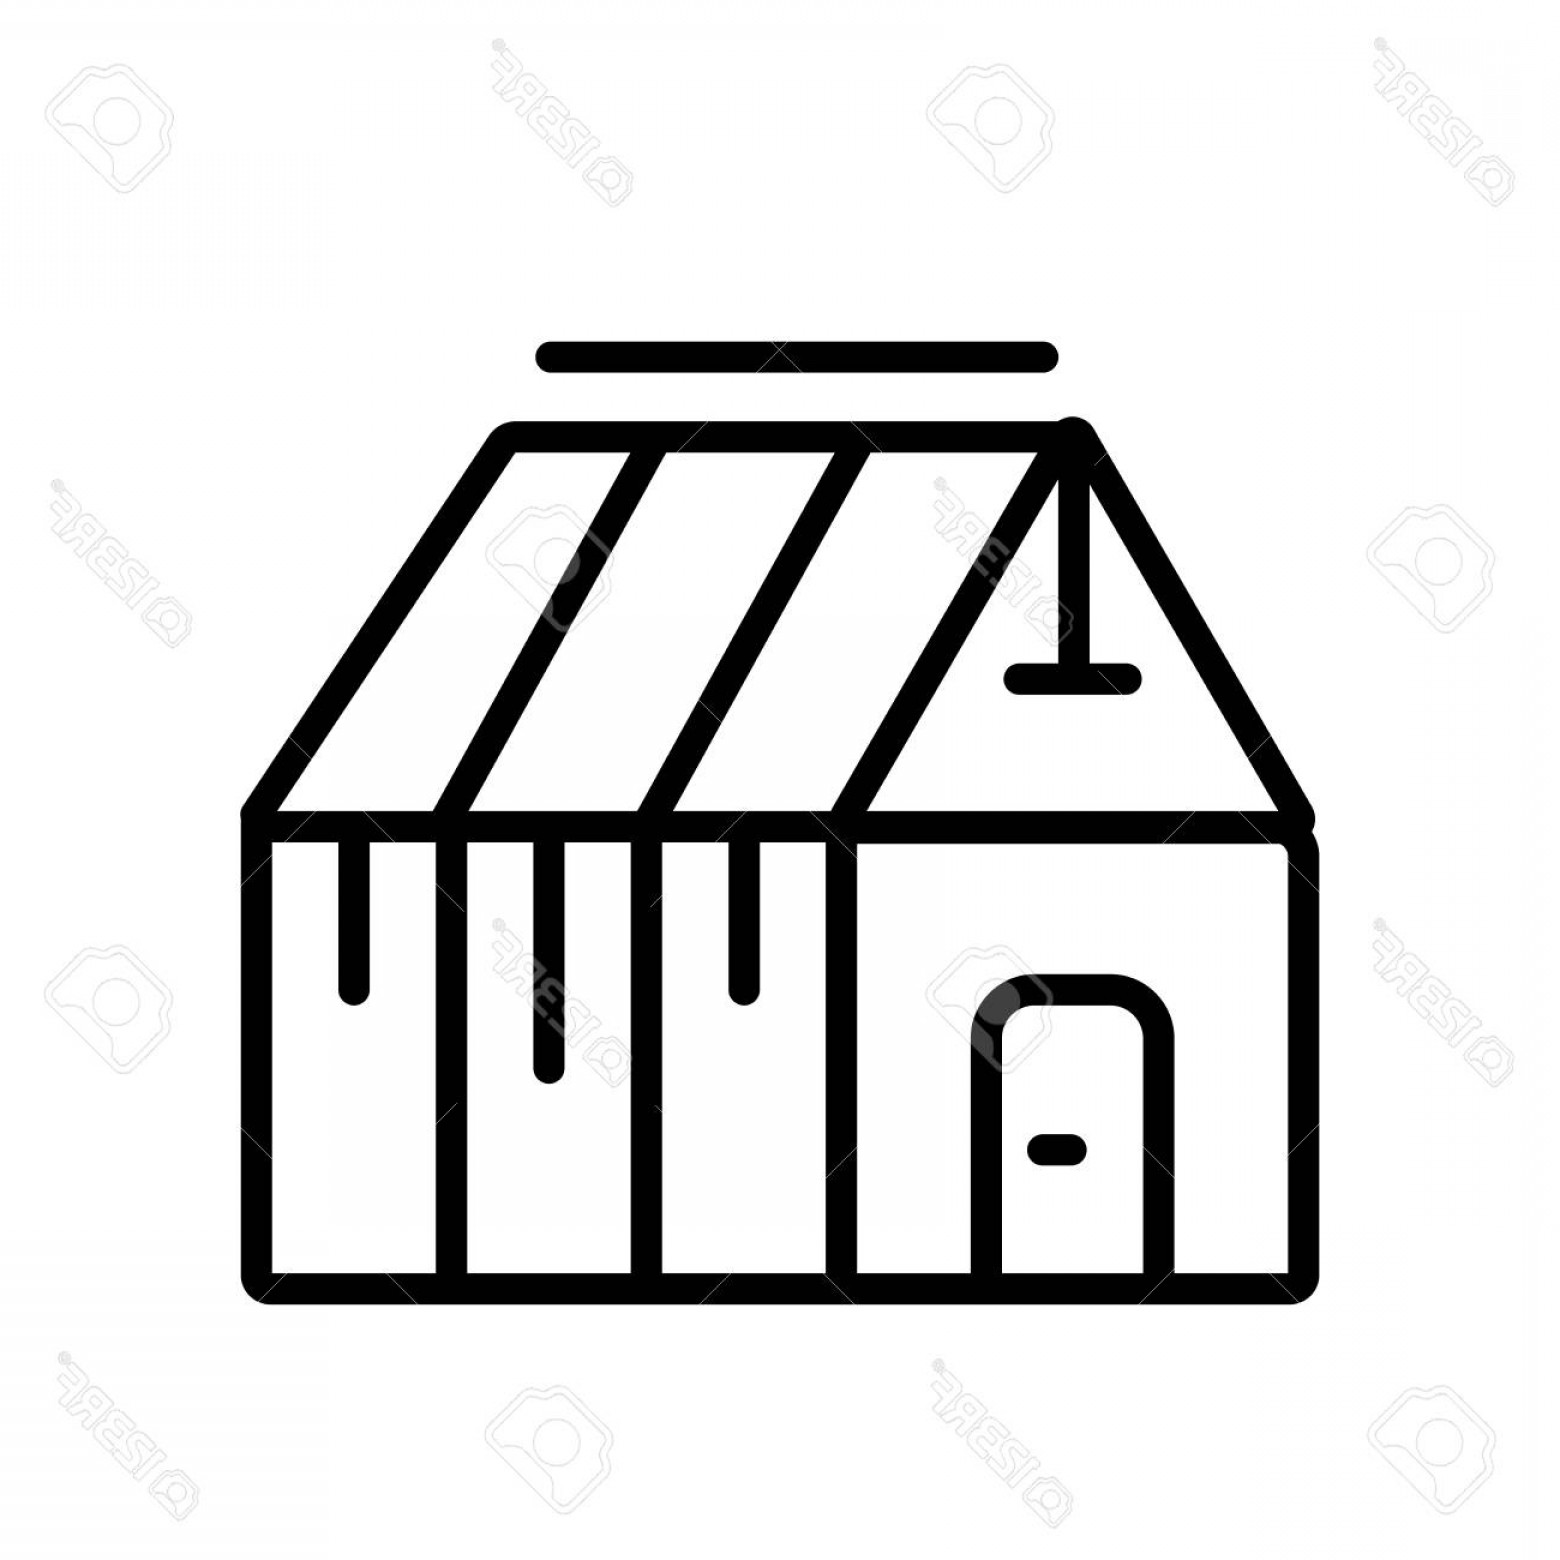 Black And White Vector Greenhouse: Photostock Vector Greenhouse Icon Vector Isolated On White Background Greenhouse Transparent Sign Line Or Linear Sign